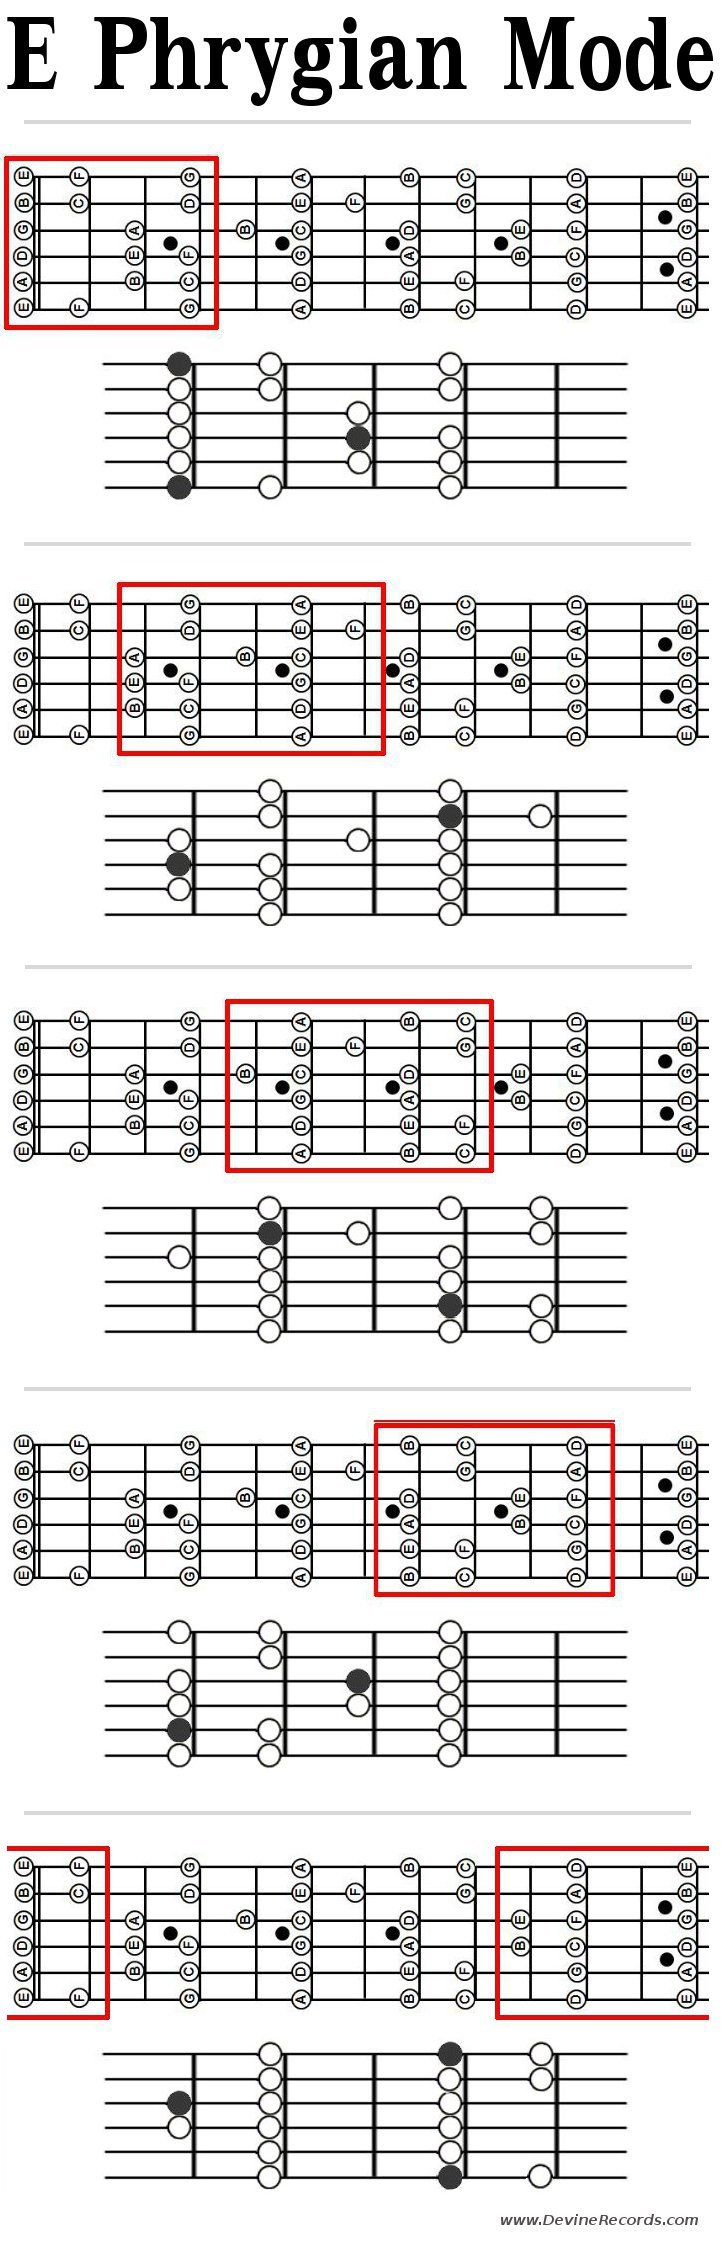 Guitar Phrygian Mode Patterns in E. Patterns with root notes and note names.